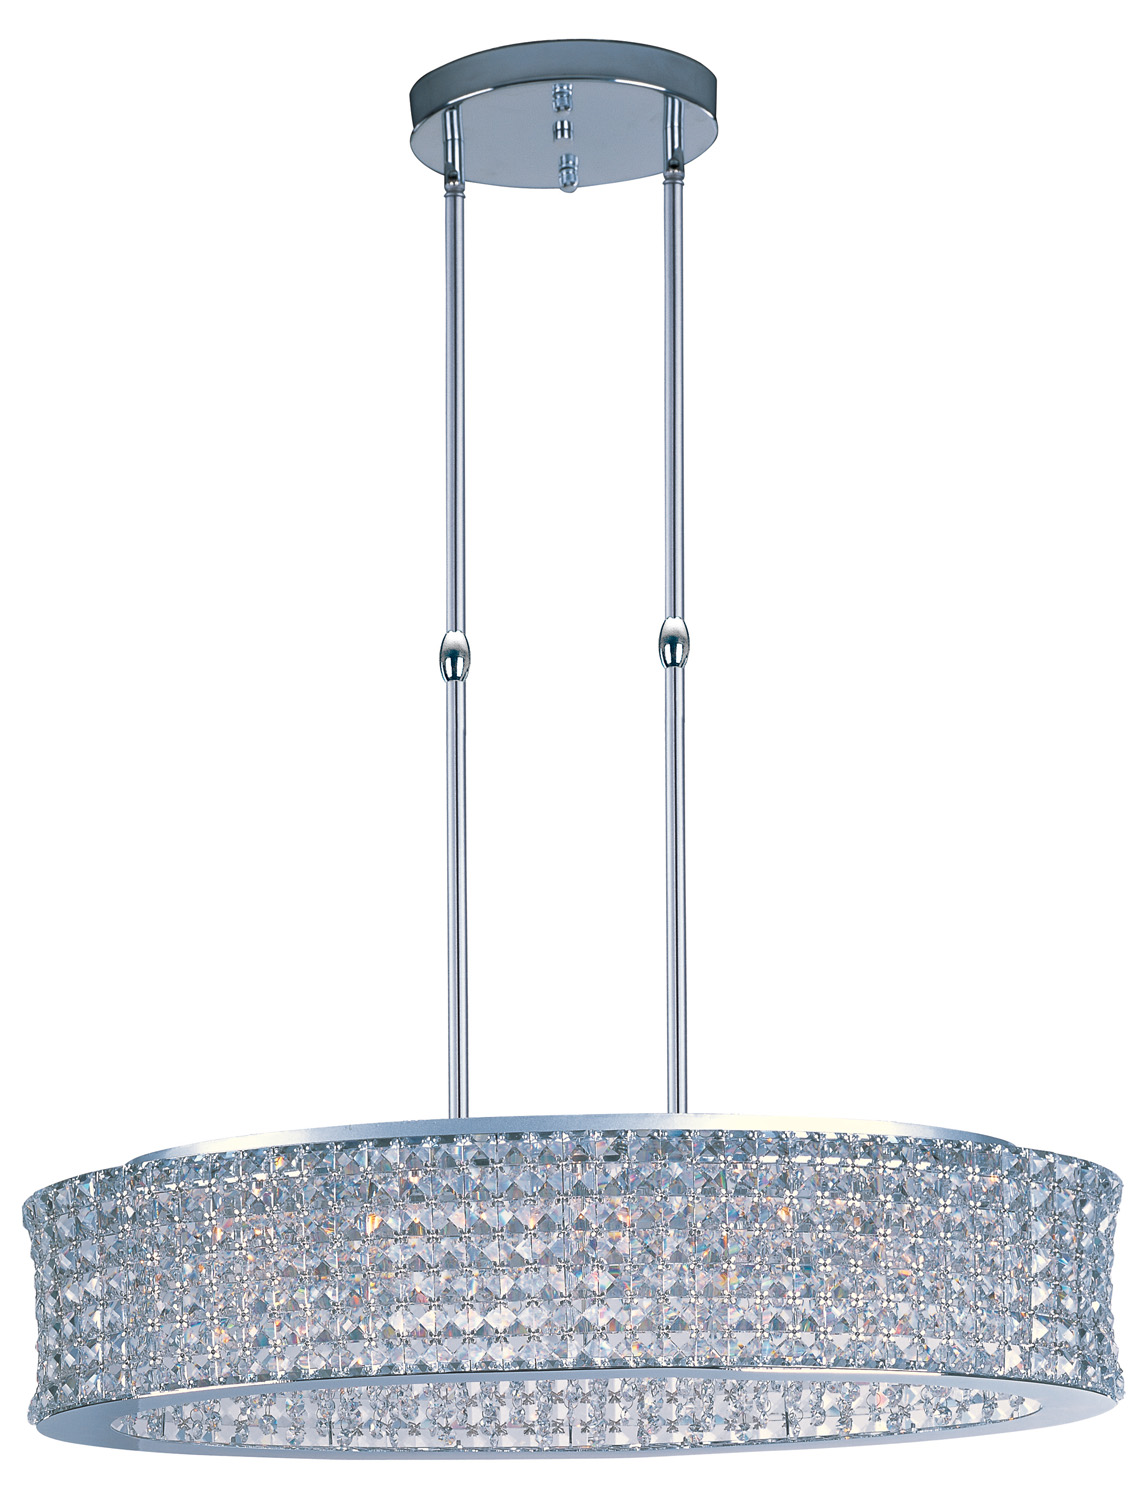 15 Light Pendant from the Vision collection by Maxim 39936BCPC